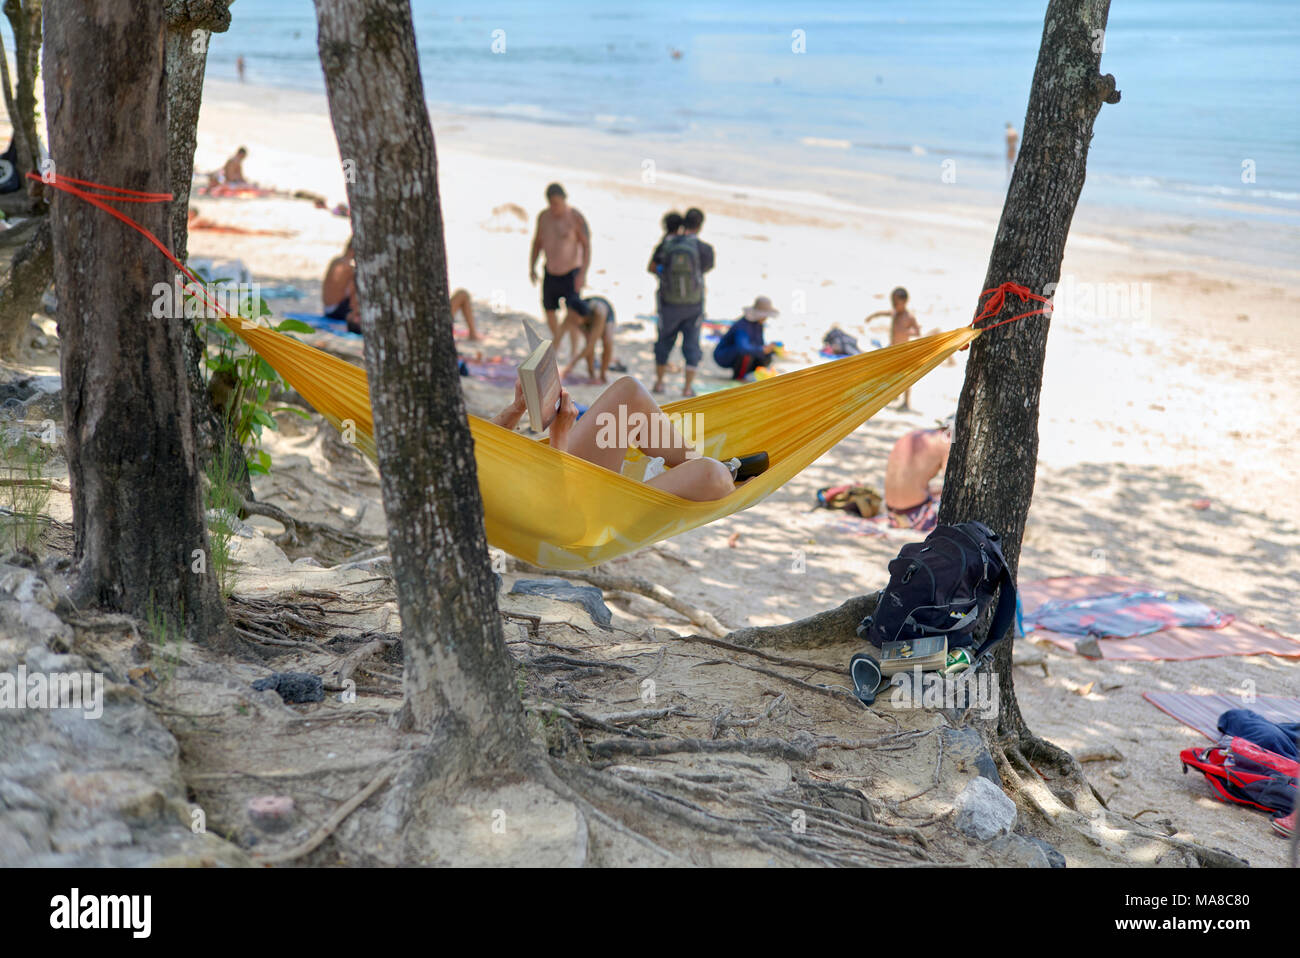 Woman relaxing in a hammock strung between the tress at Ao Nang beach Krabi Thailand - Stock Image